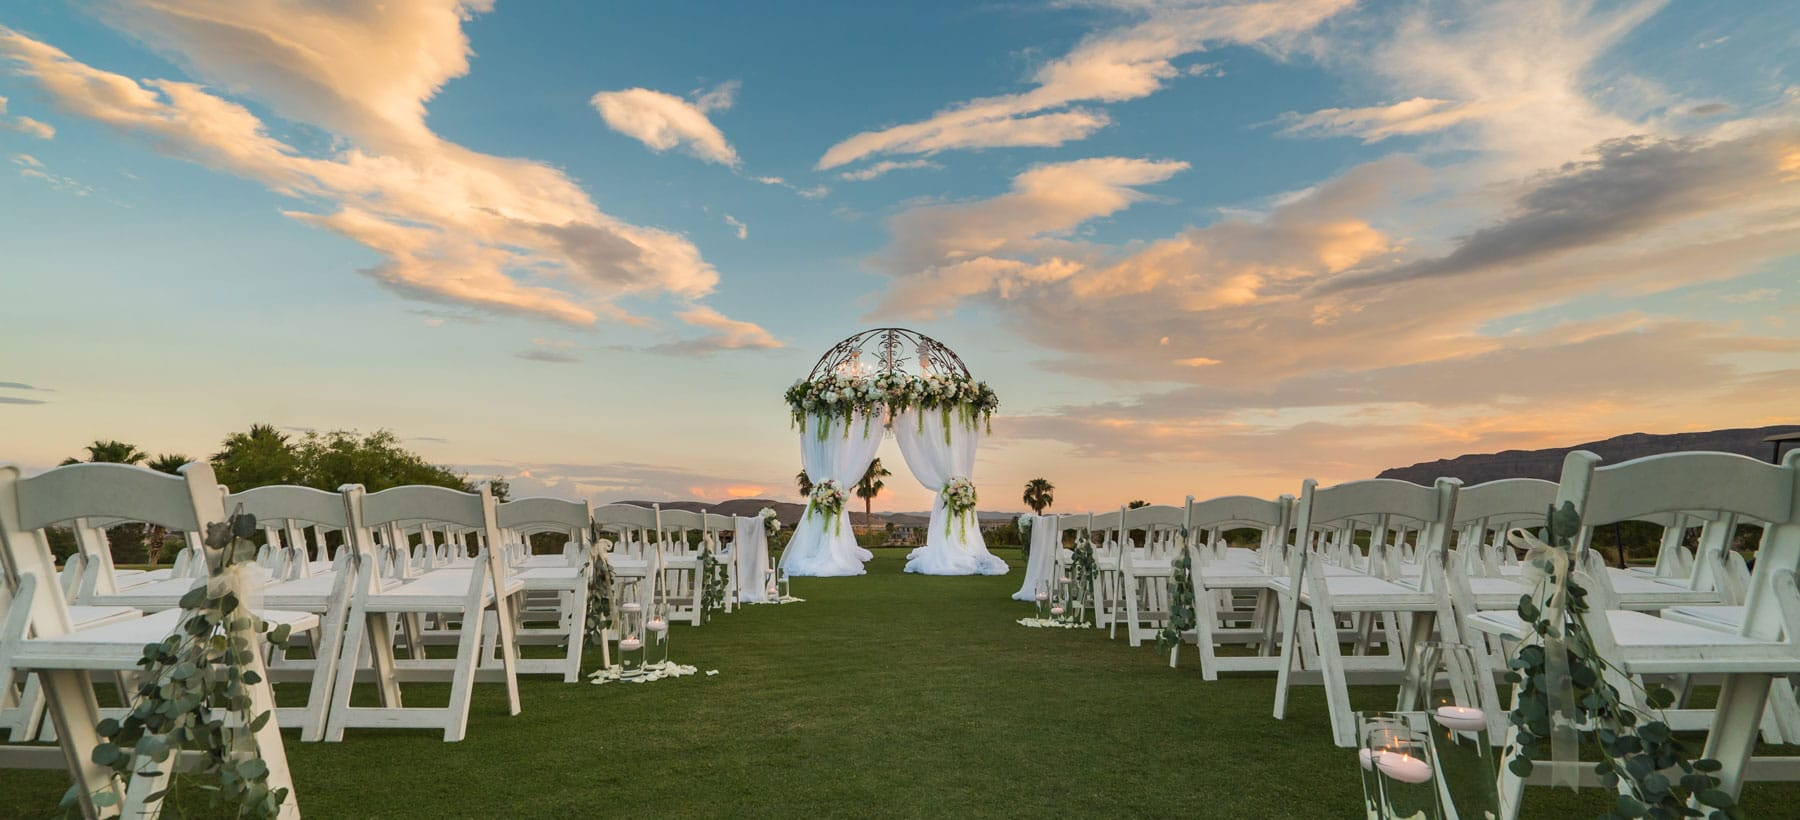 Book a Wedding in Las Vegas